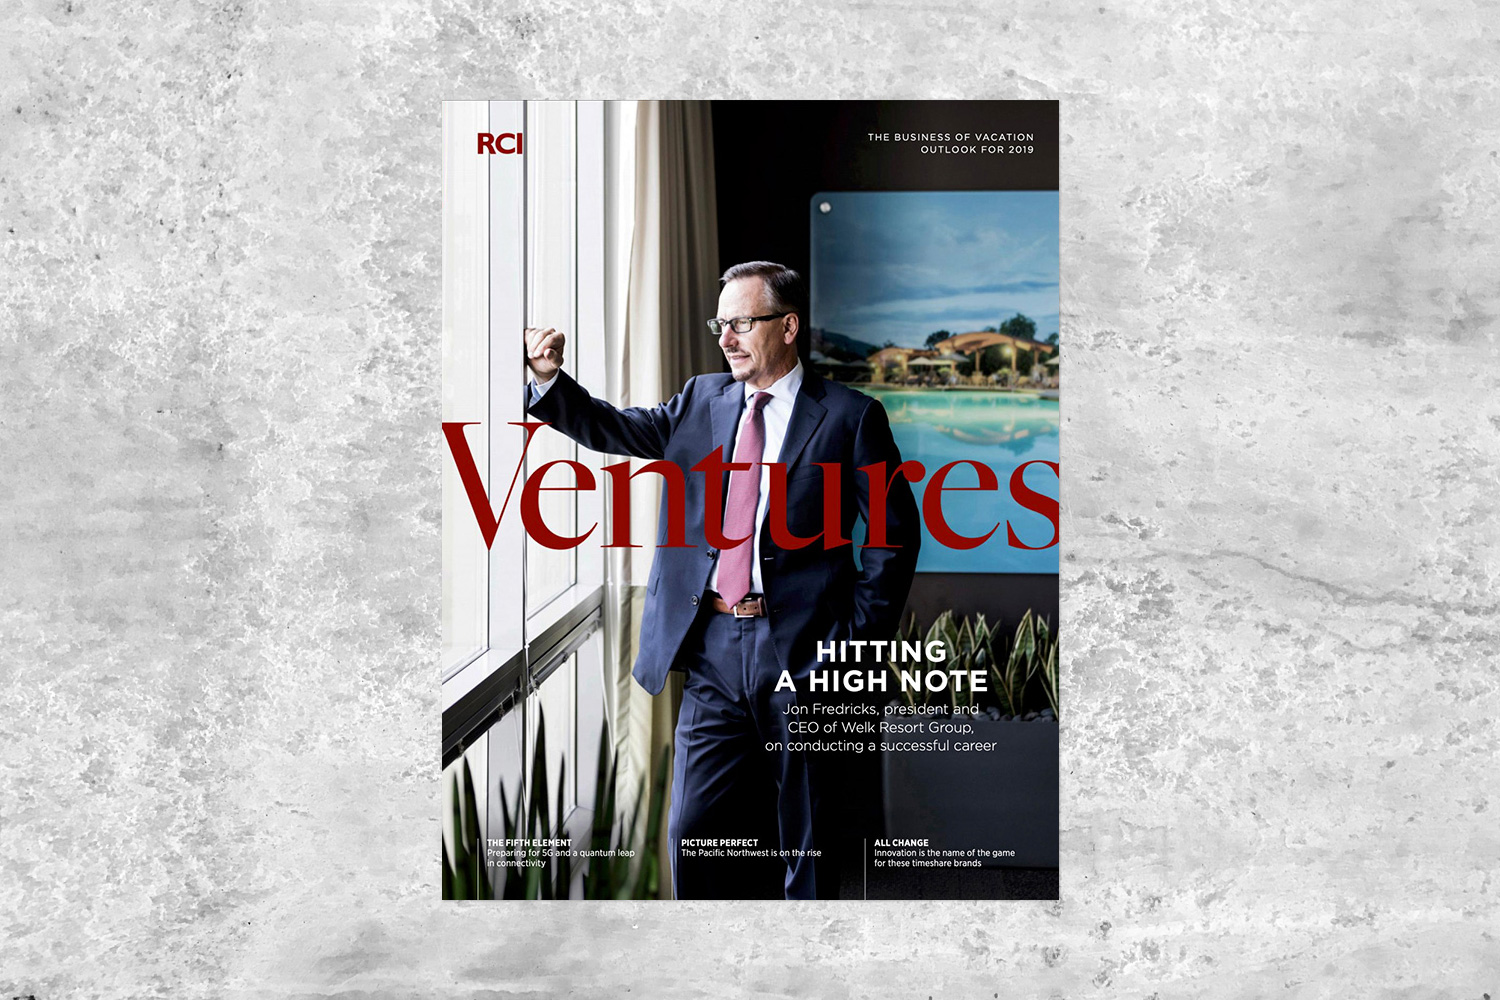 PATRICK STRATTNER PHOTOGRAPHY | TEAR SHEETS | Jon Fredricks / RCI Ventures